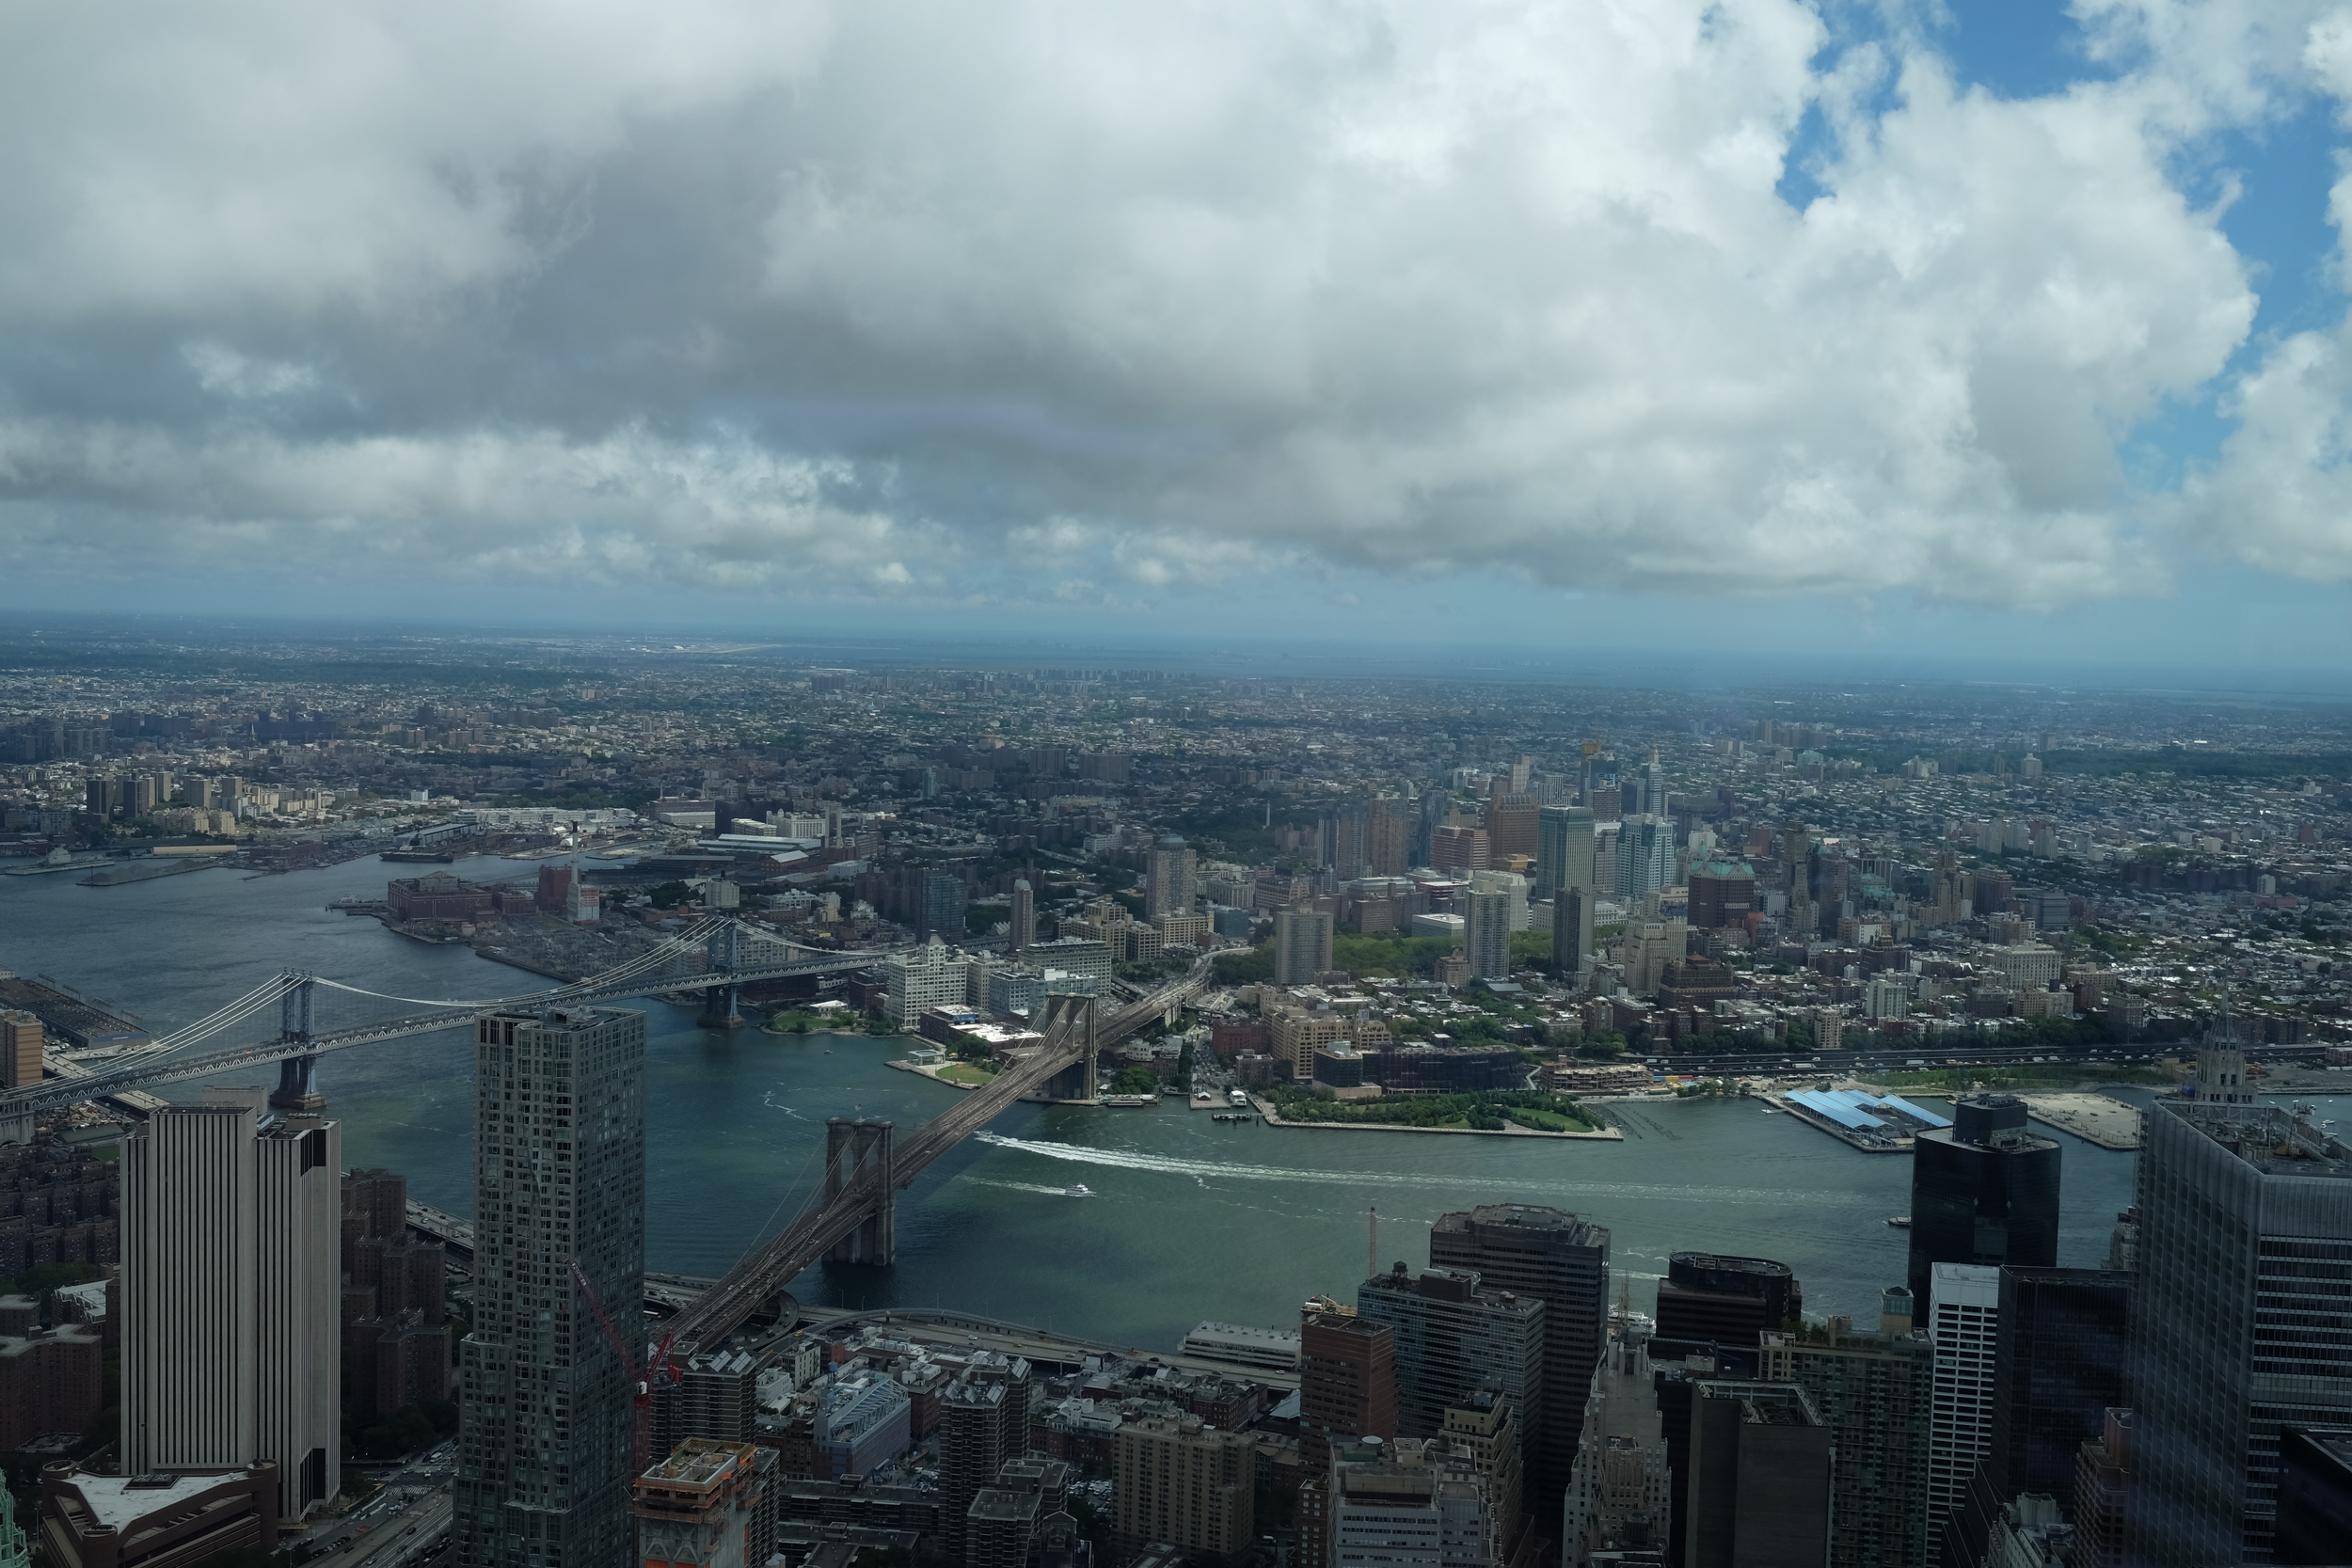 The views from the top are incredible!